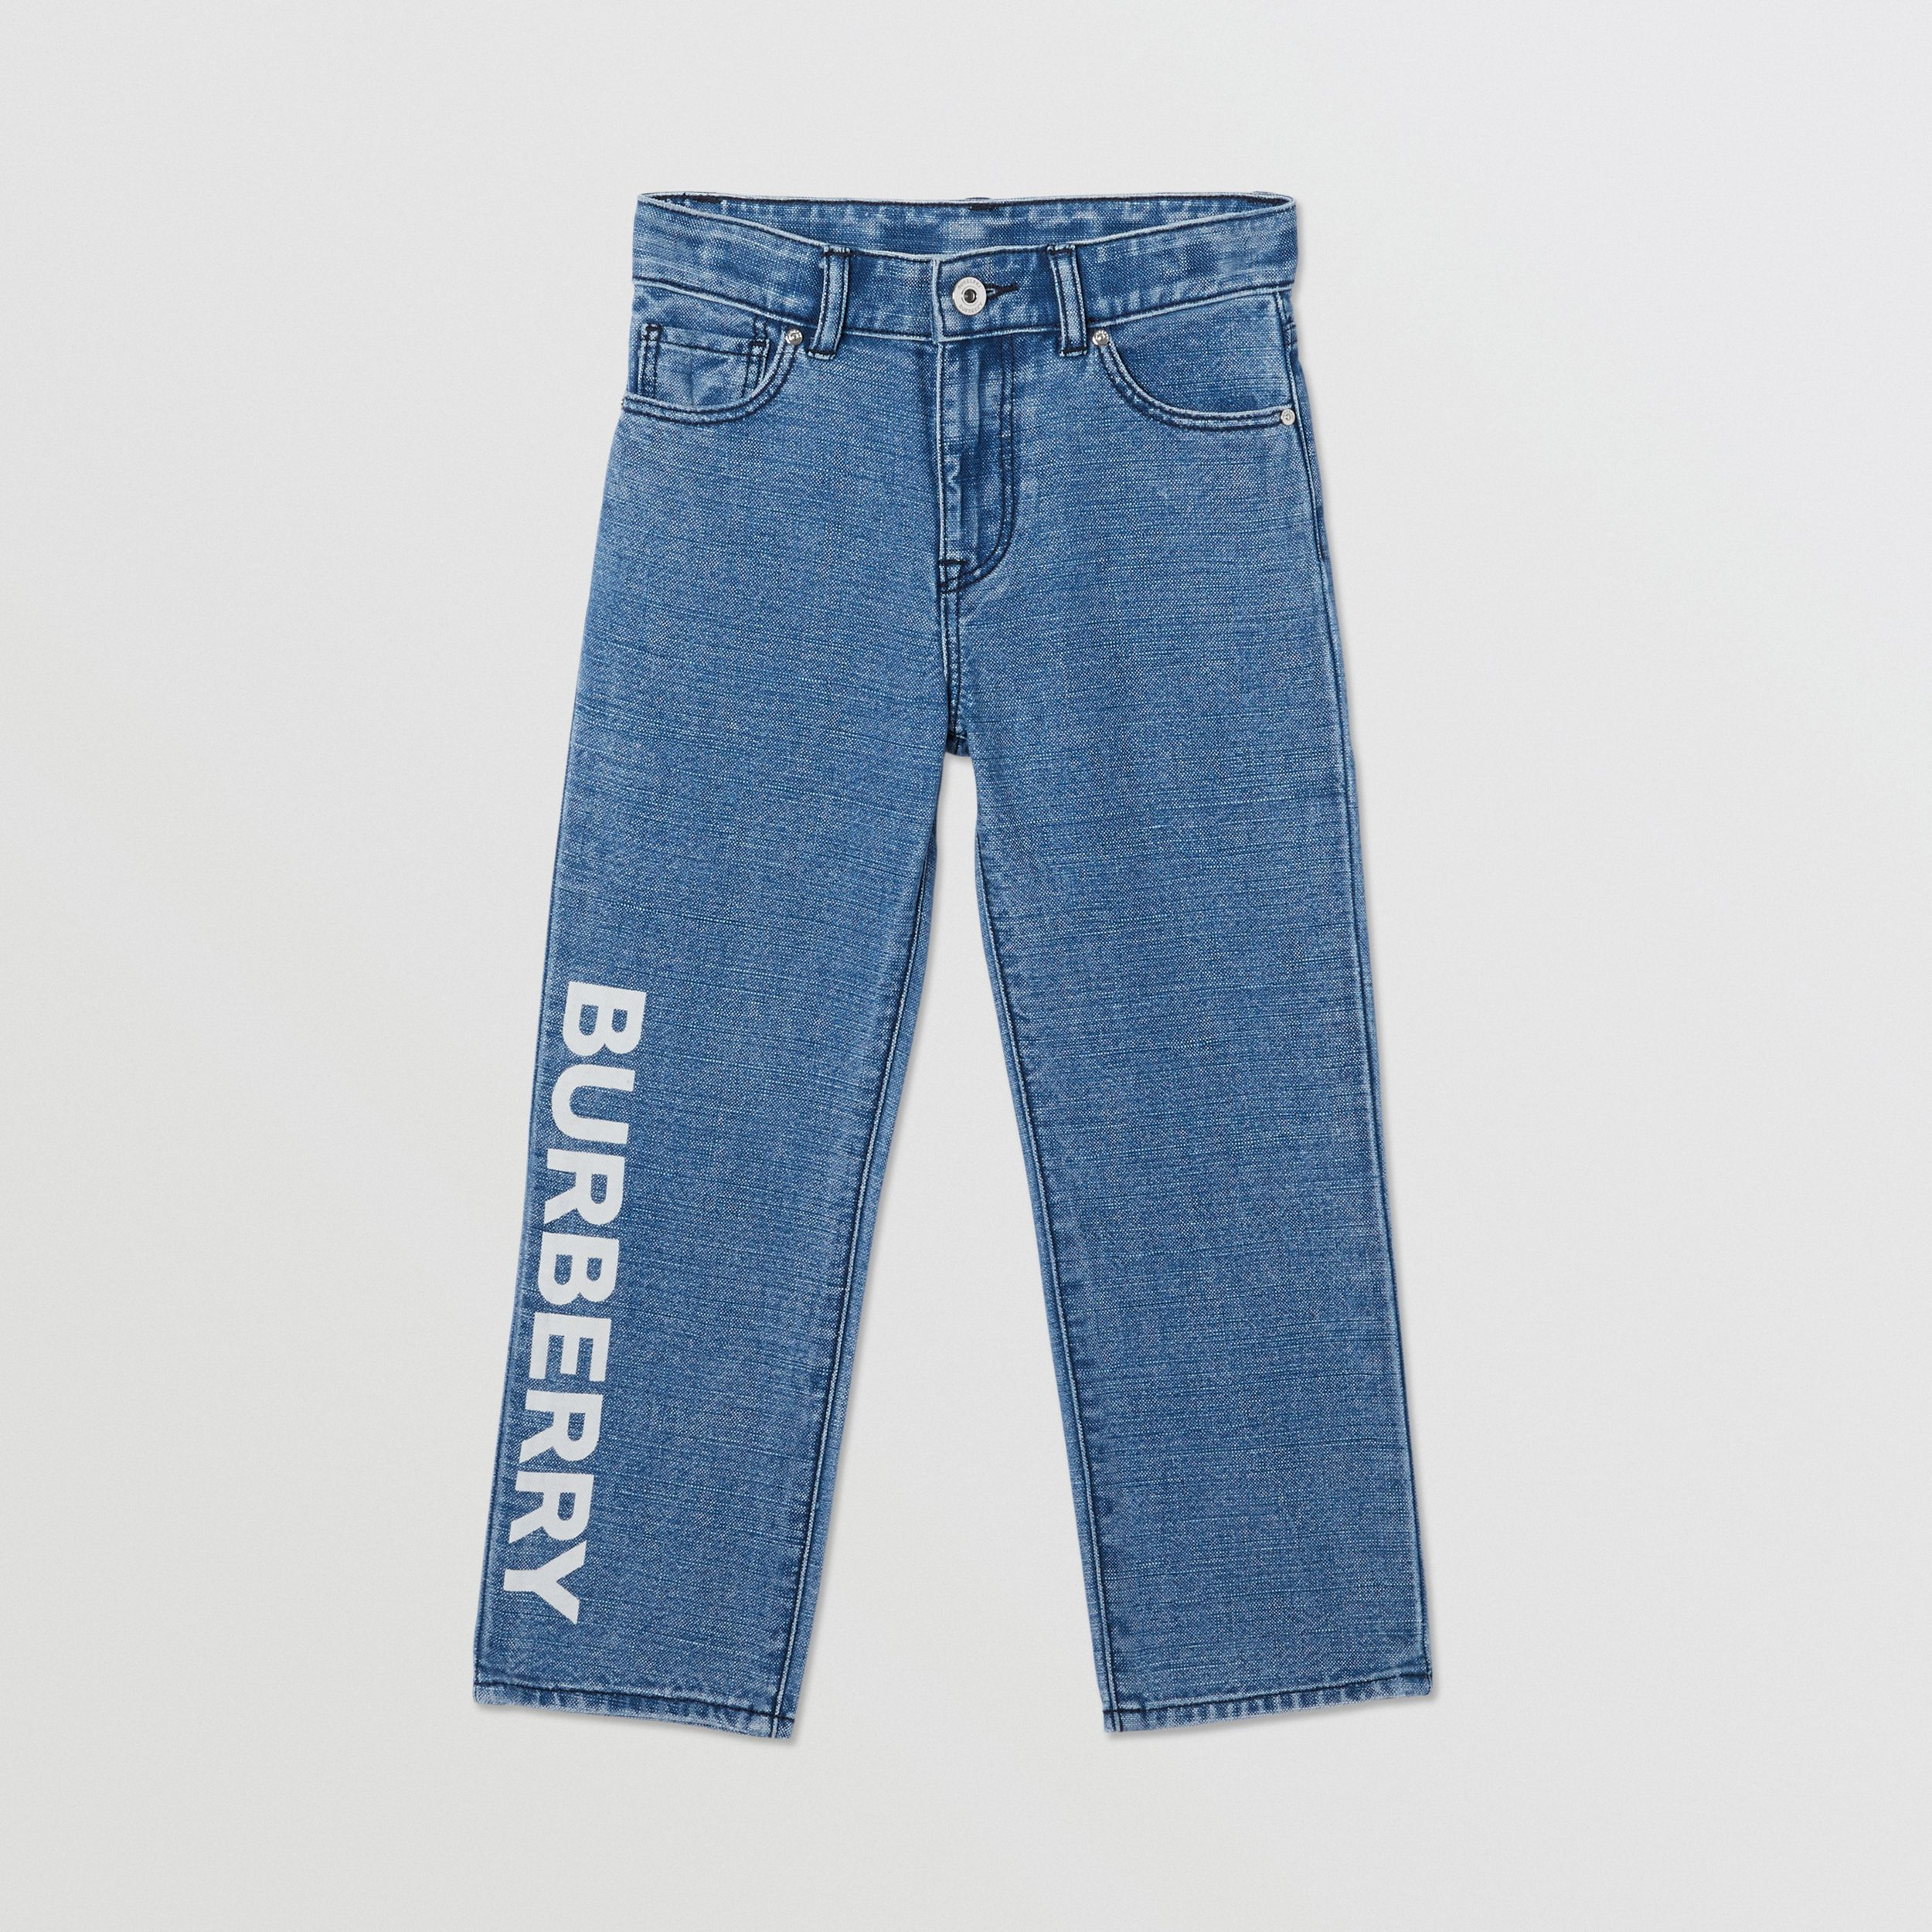 Logo Print Japanese Denim Jeans in Indigo | Burberry - 1